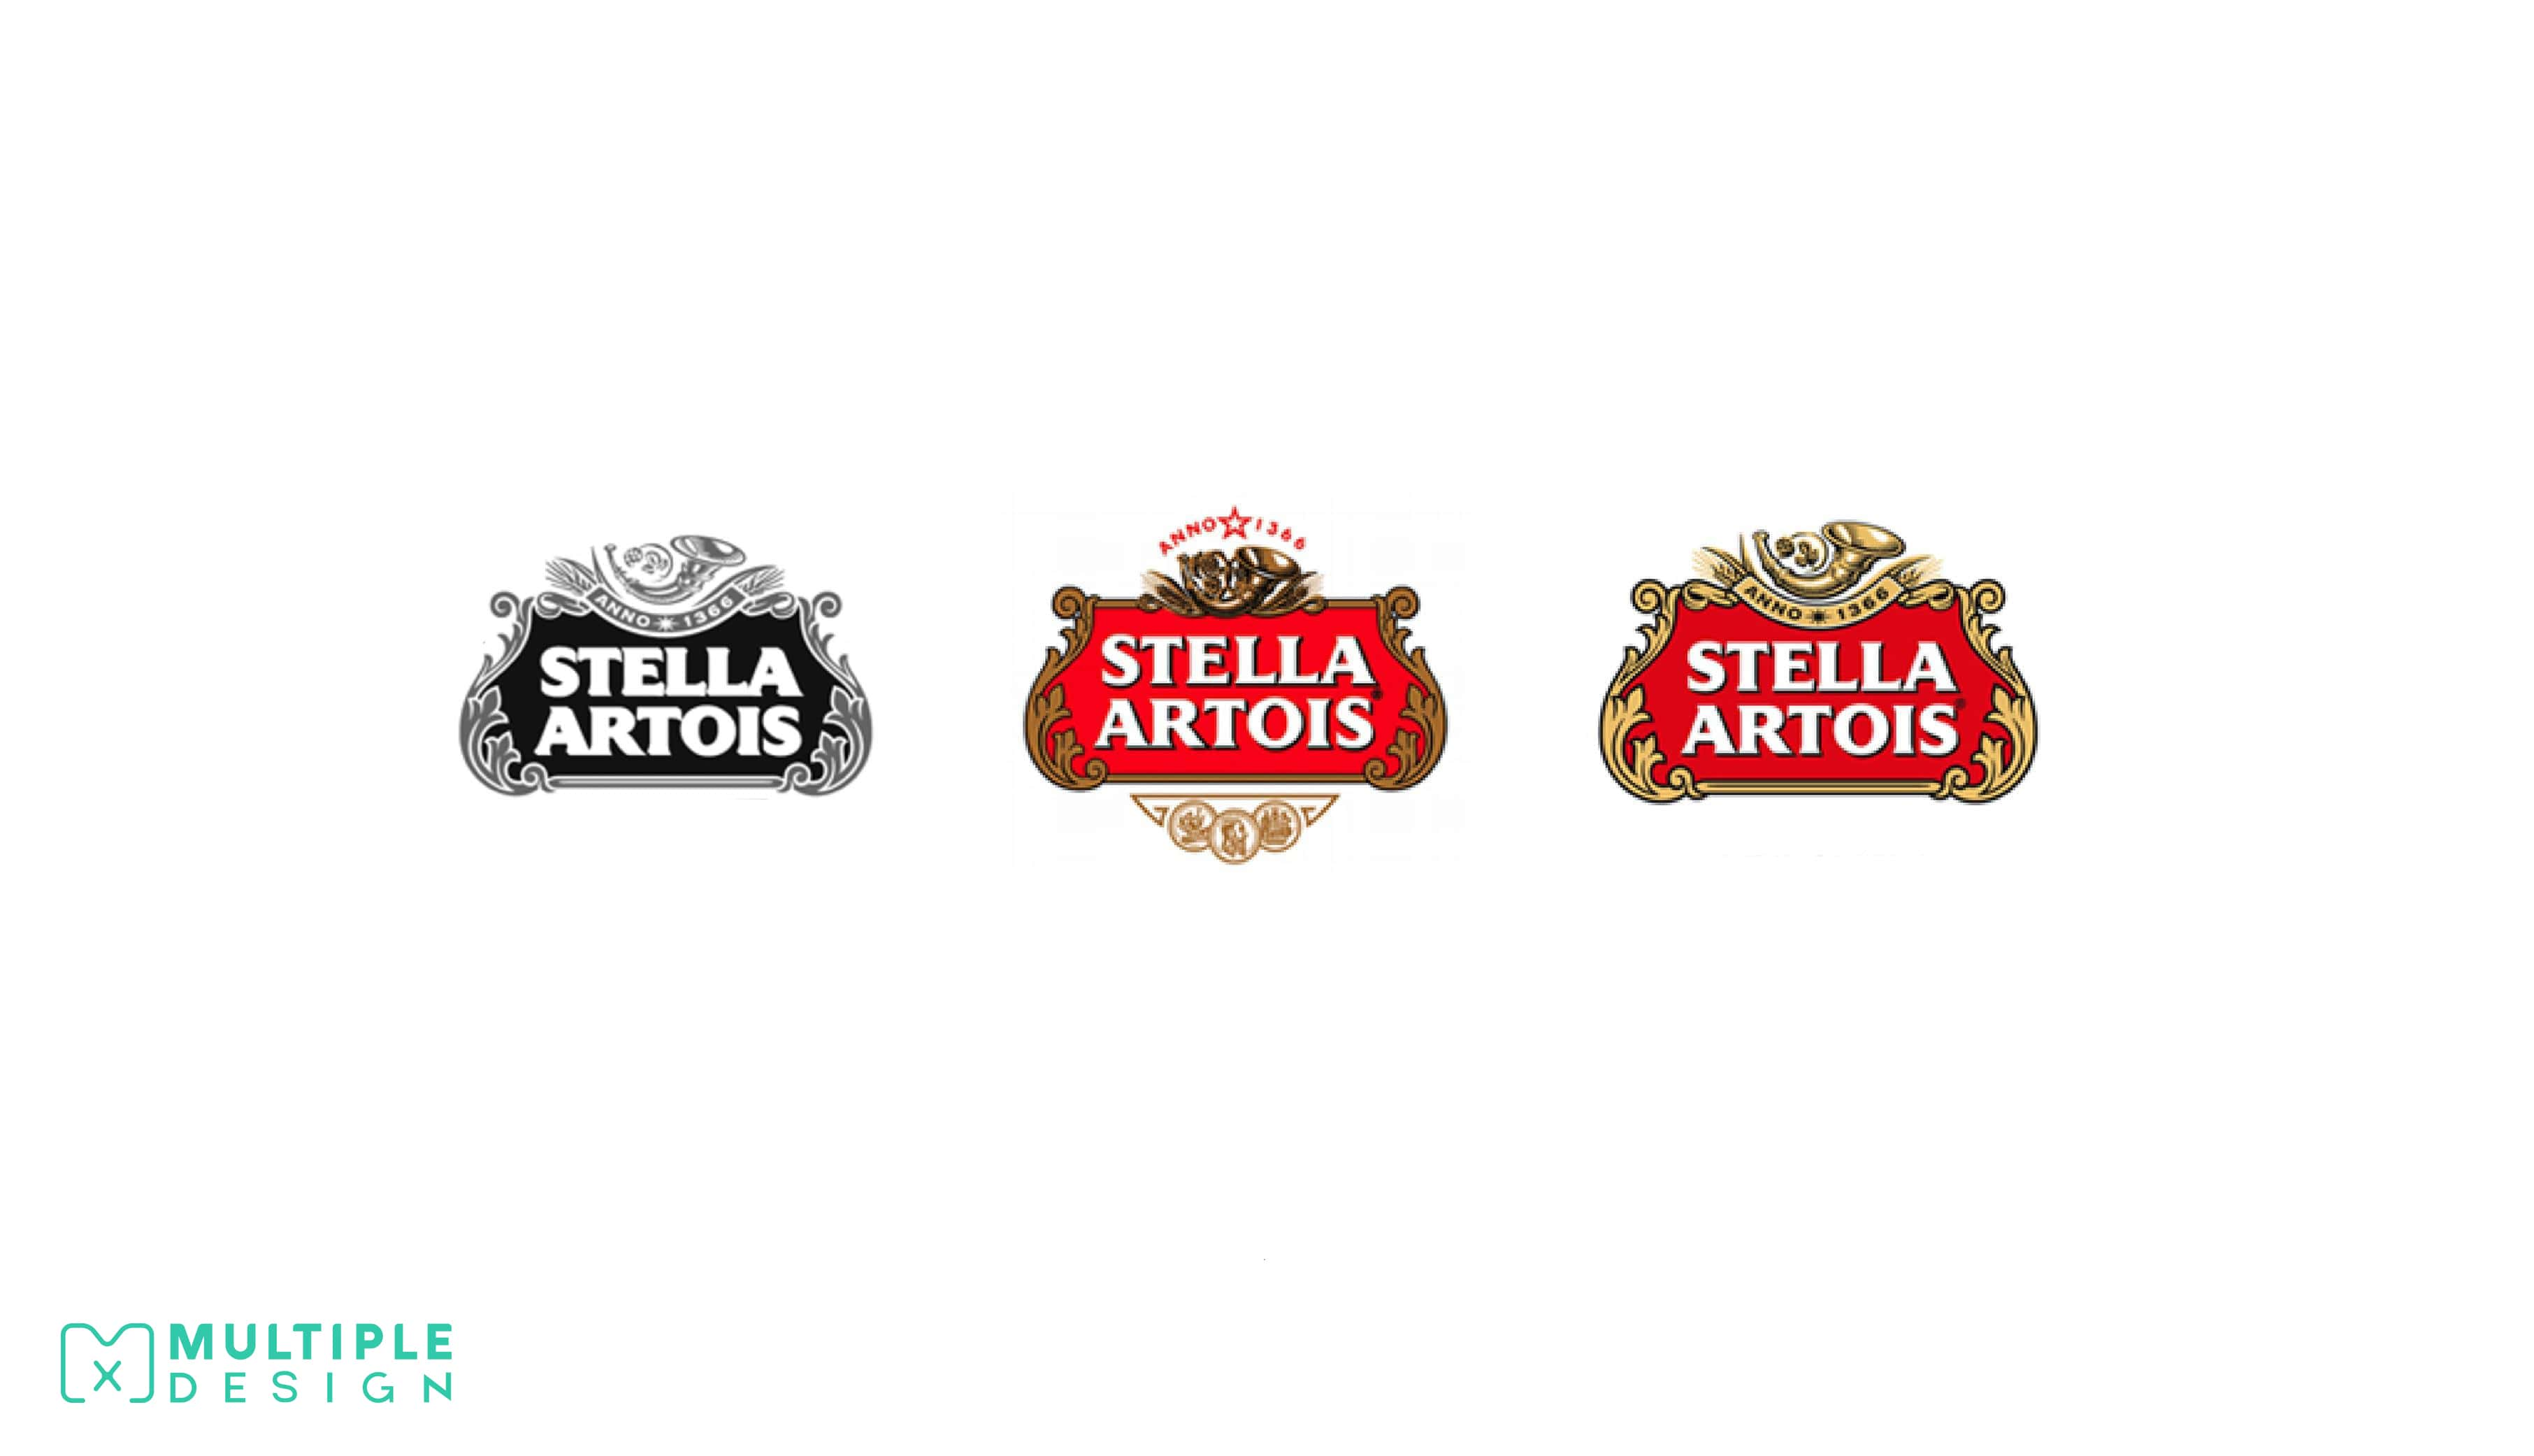 stella artois oldest logo